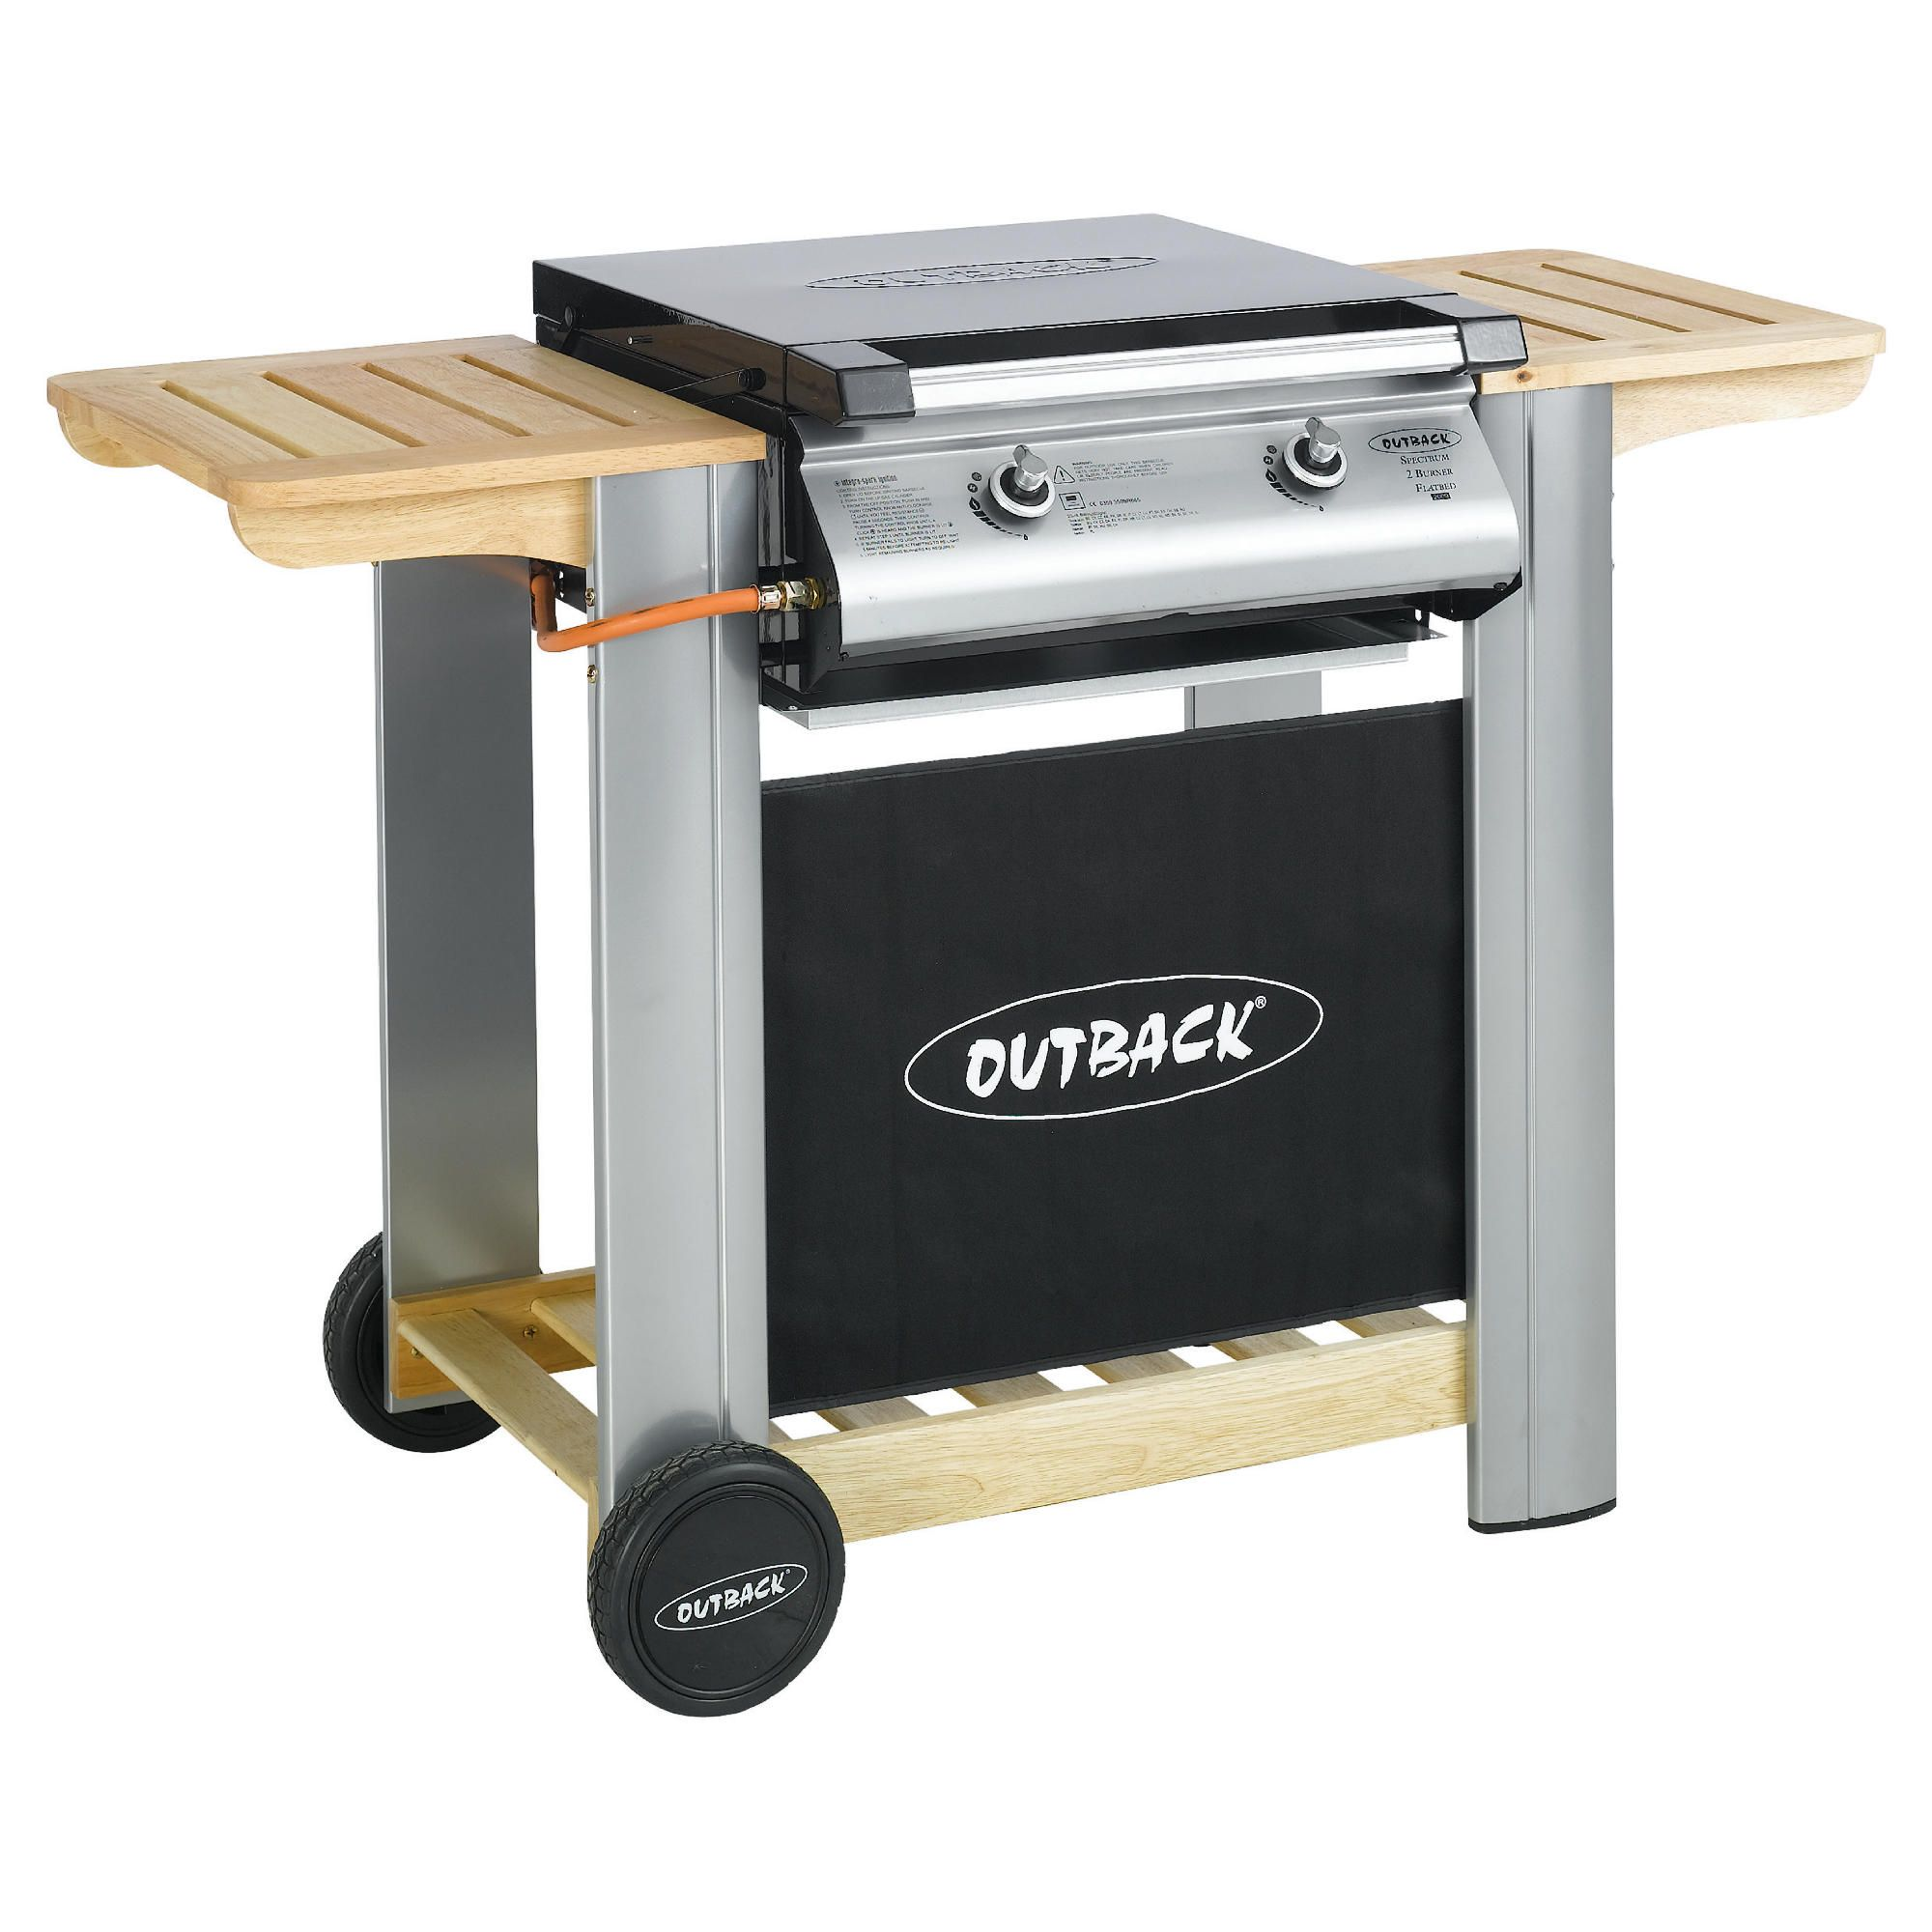 Outback Spectrum 2 Burner Flatbed Gas BBQ with Cover at Tesco Direct